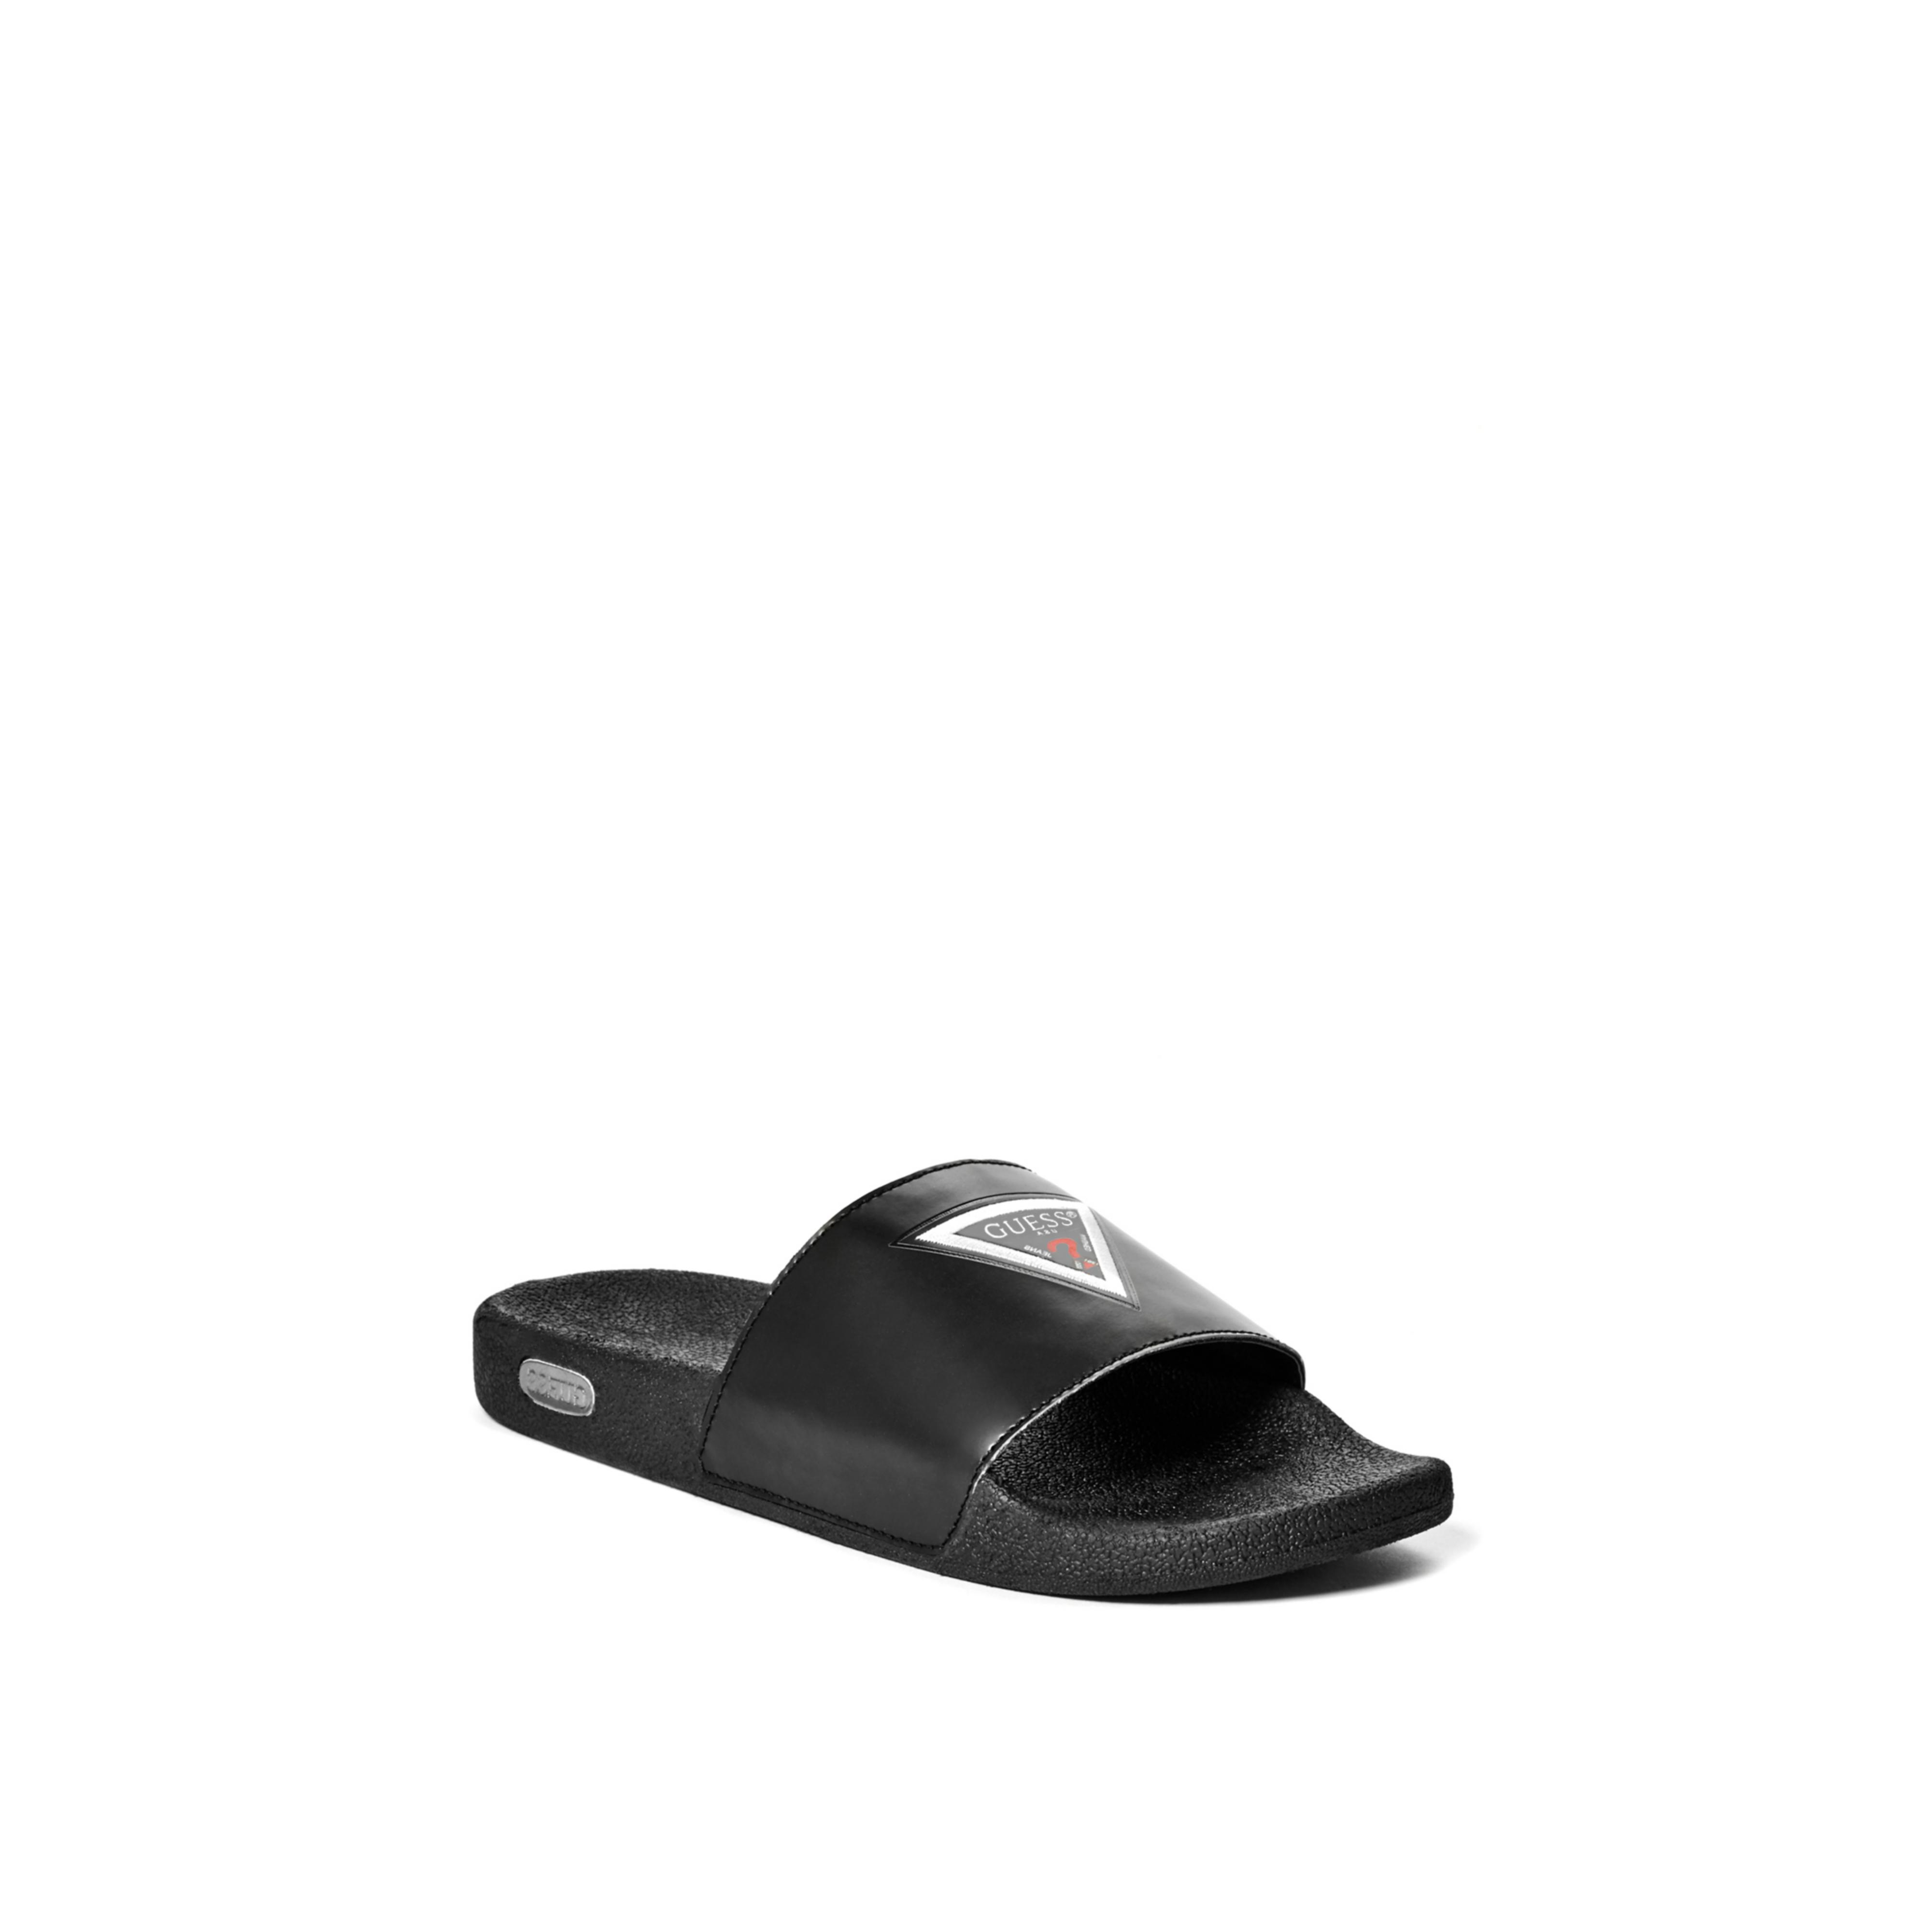 buy cheap with credit card outlet purchase Angel fashion Footwear Black Slide Flip flop shopping online sale online browse sale online cheap price wholesale DccKcdI